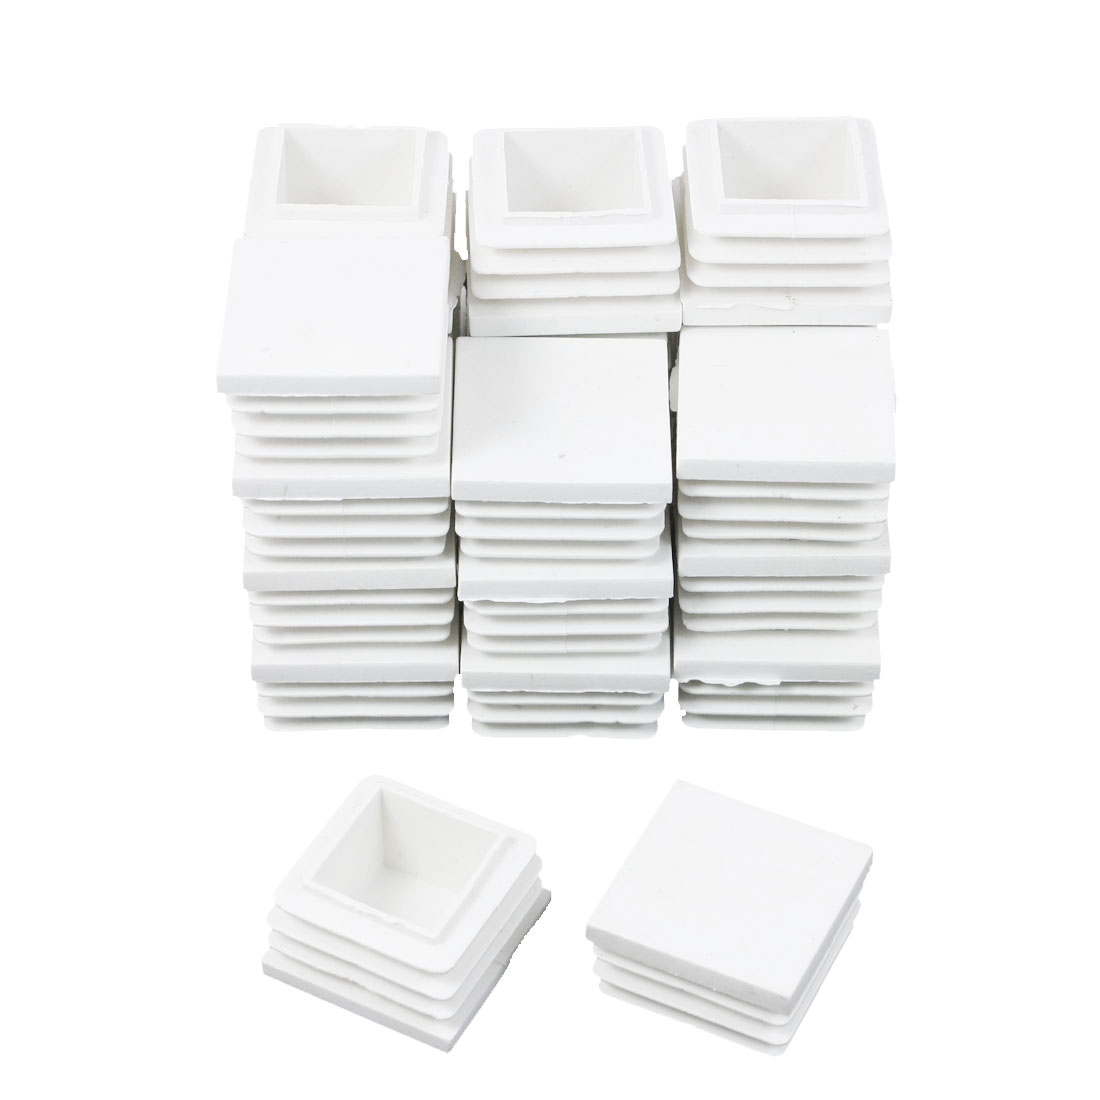 24 Pieces White Plastic Square Blanking End Caps Tubing Tube Inserts 30mm x 30mm